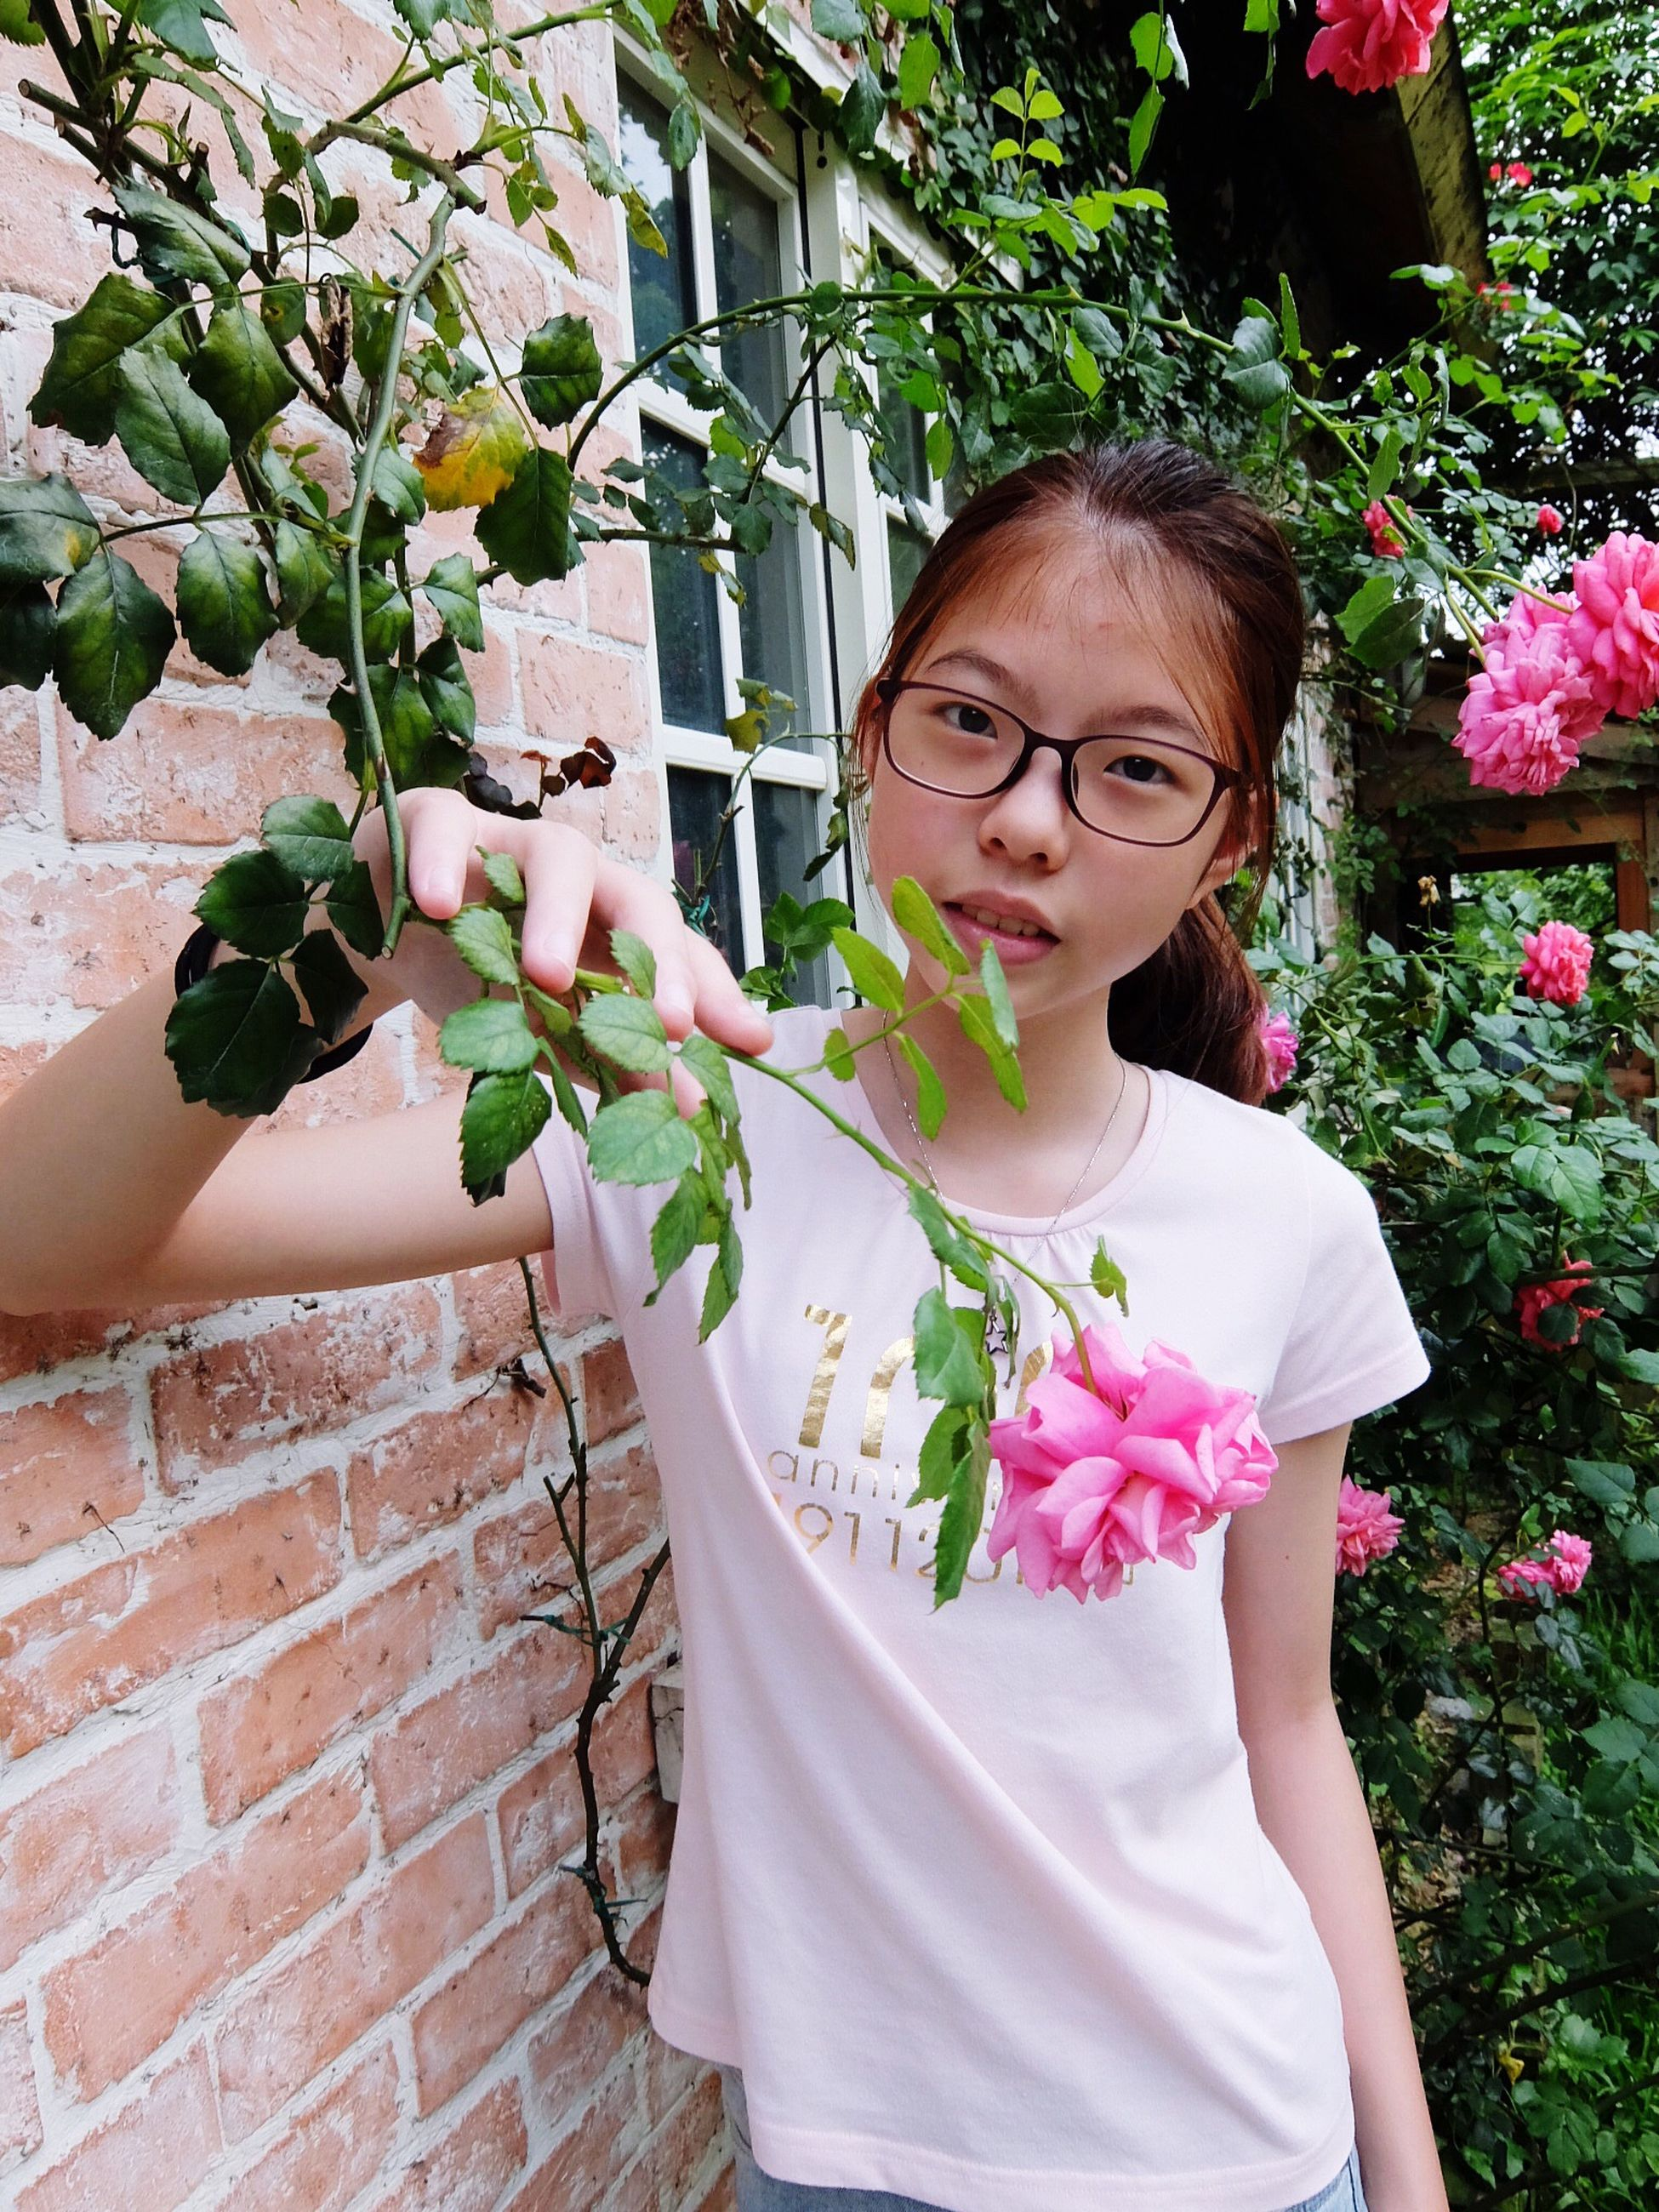 flower, lifestyles, freshness, plant, person, growth, standing, leisure activity, casual clothing, potted plant, pink color, young adult, leaf, holding, young women, fragility, sitting, front view